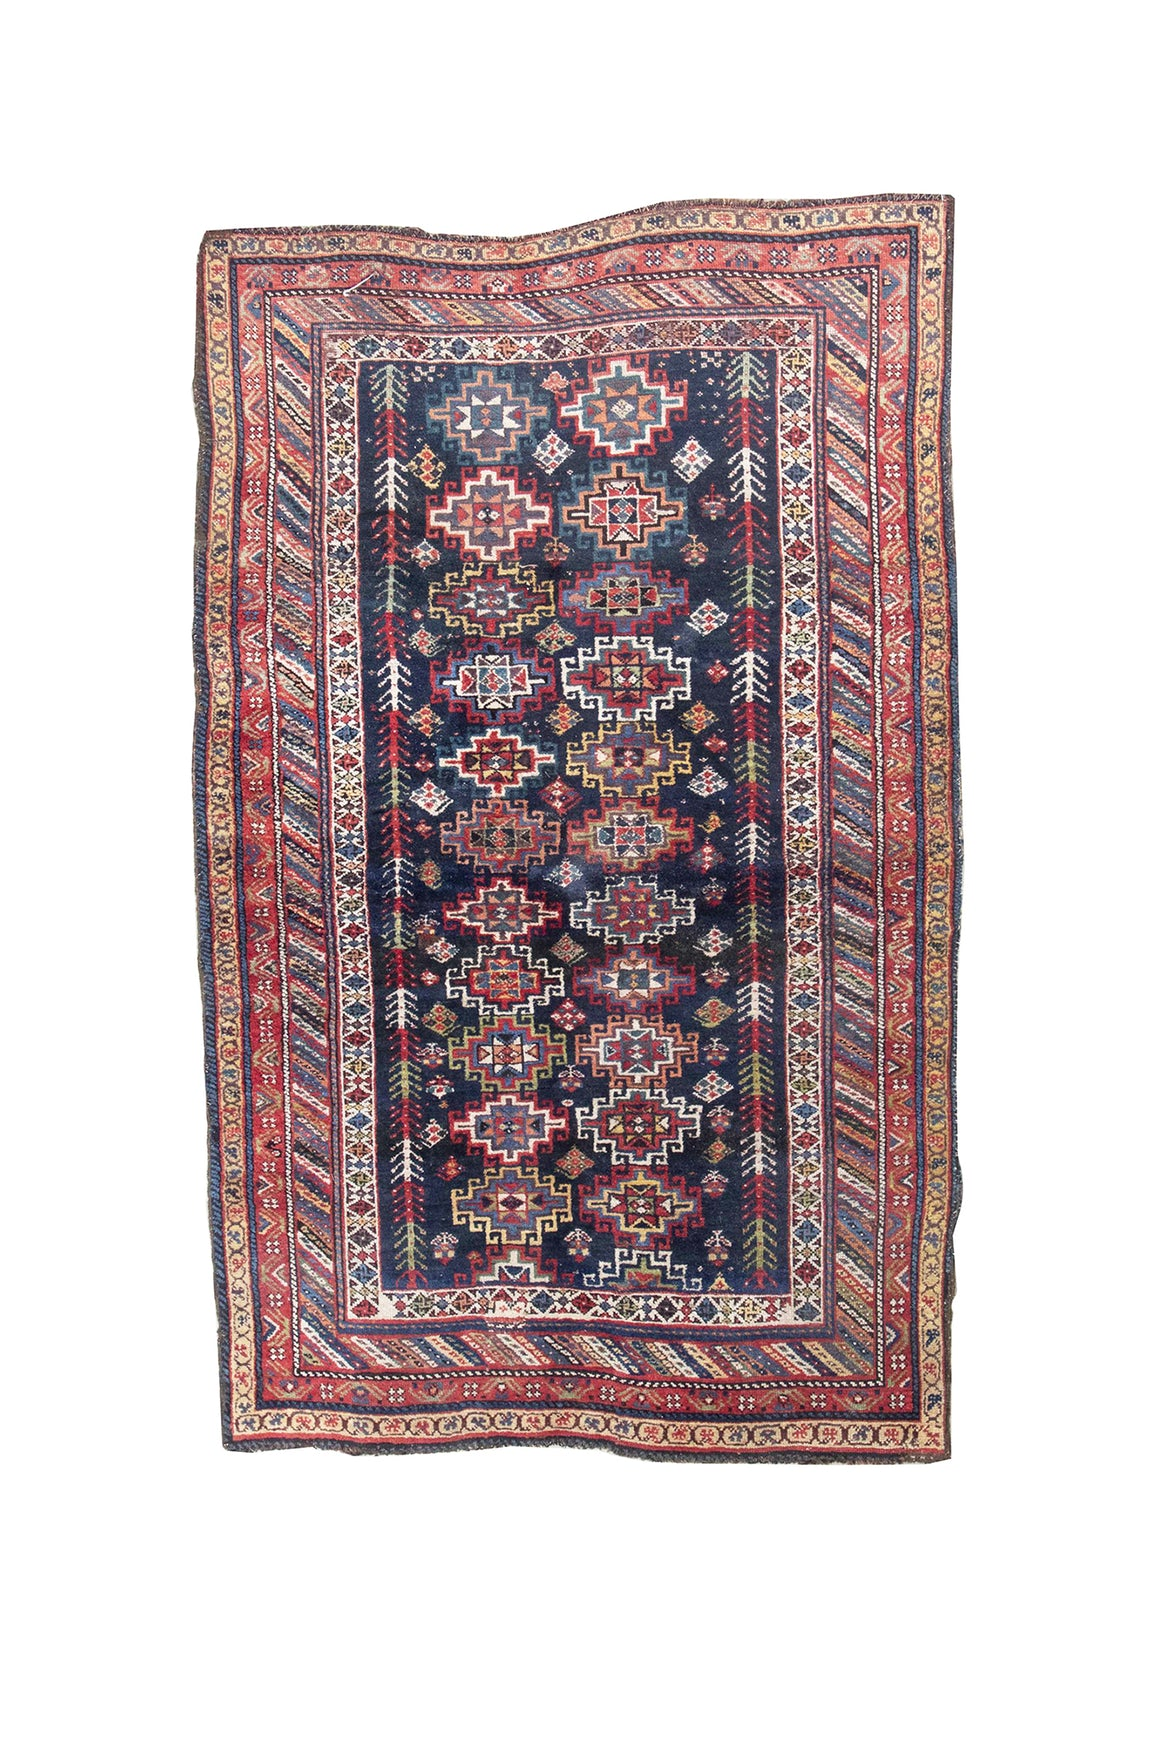 "20th Century Kurdish Area Rug - 90"" x 55"""